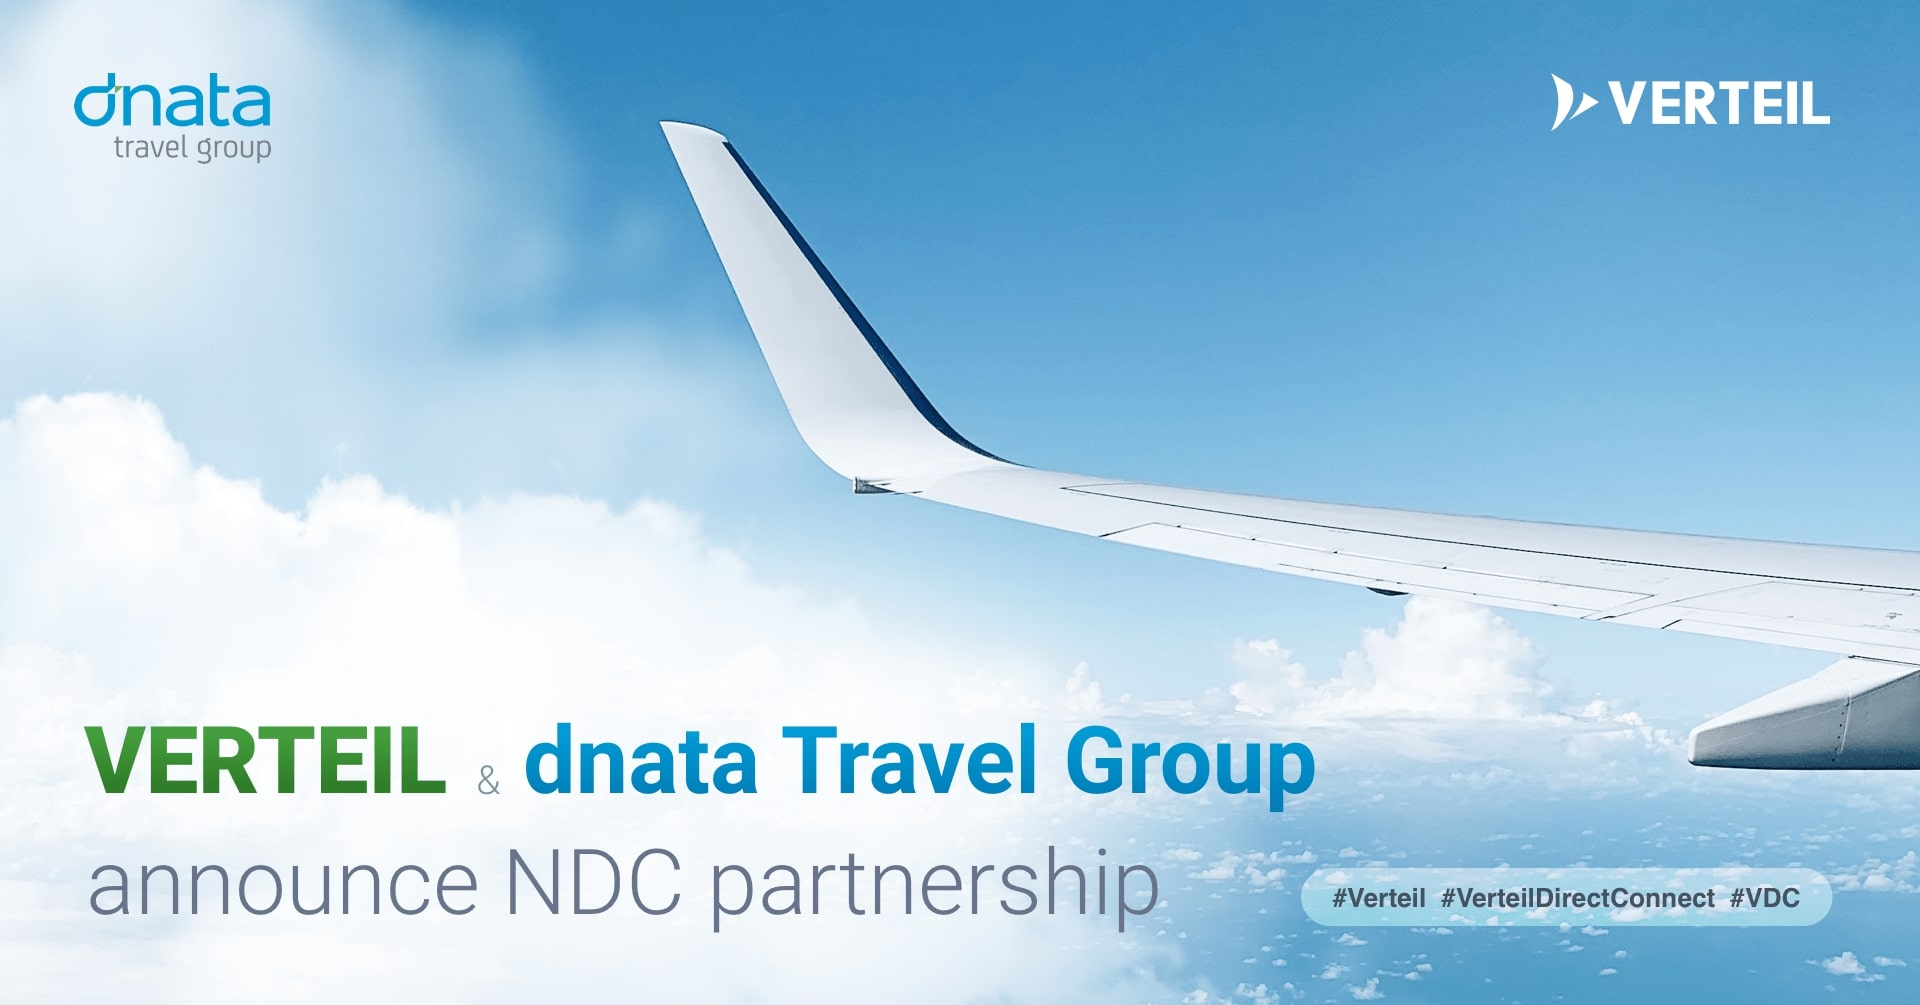 Verteil and dnata Travel Group announce NDC Partnership